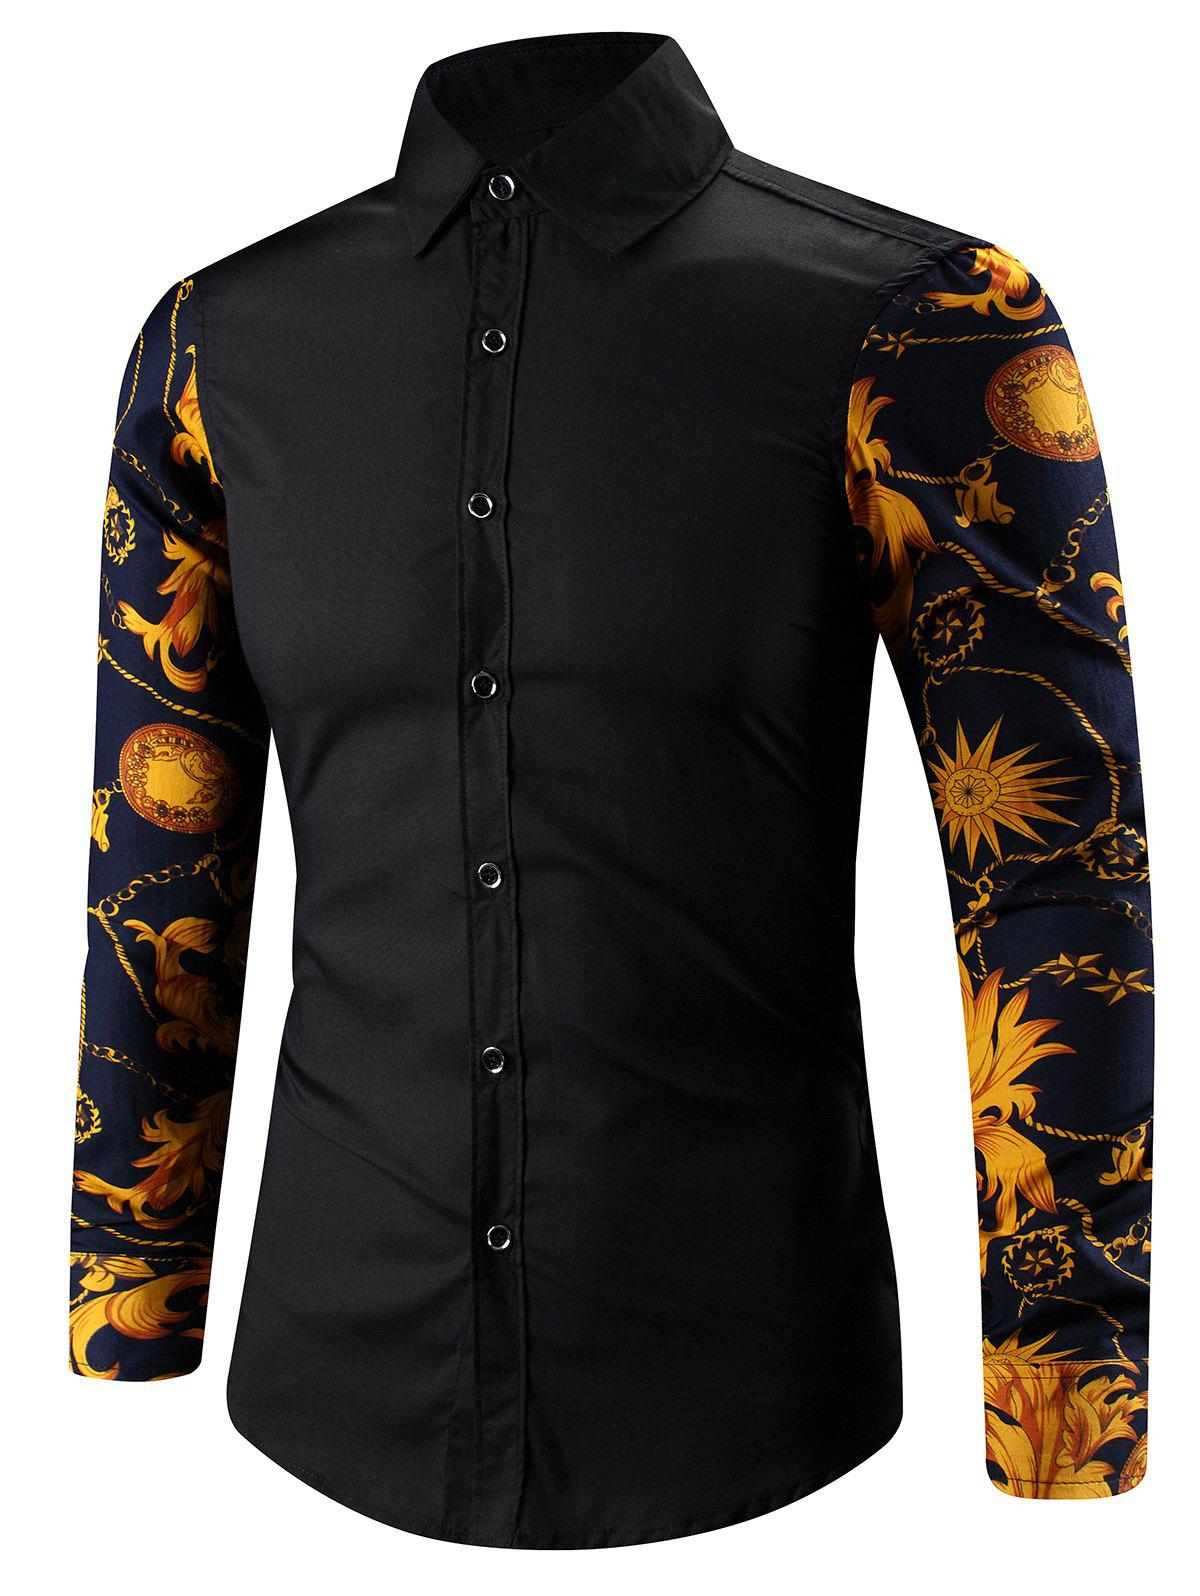 Shops Turn-Down Collar 3D Abstract Floral Print Spliced Shirt